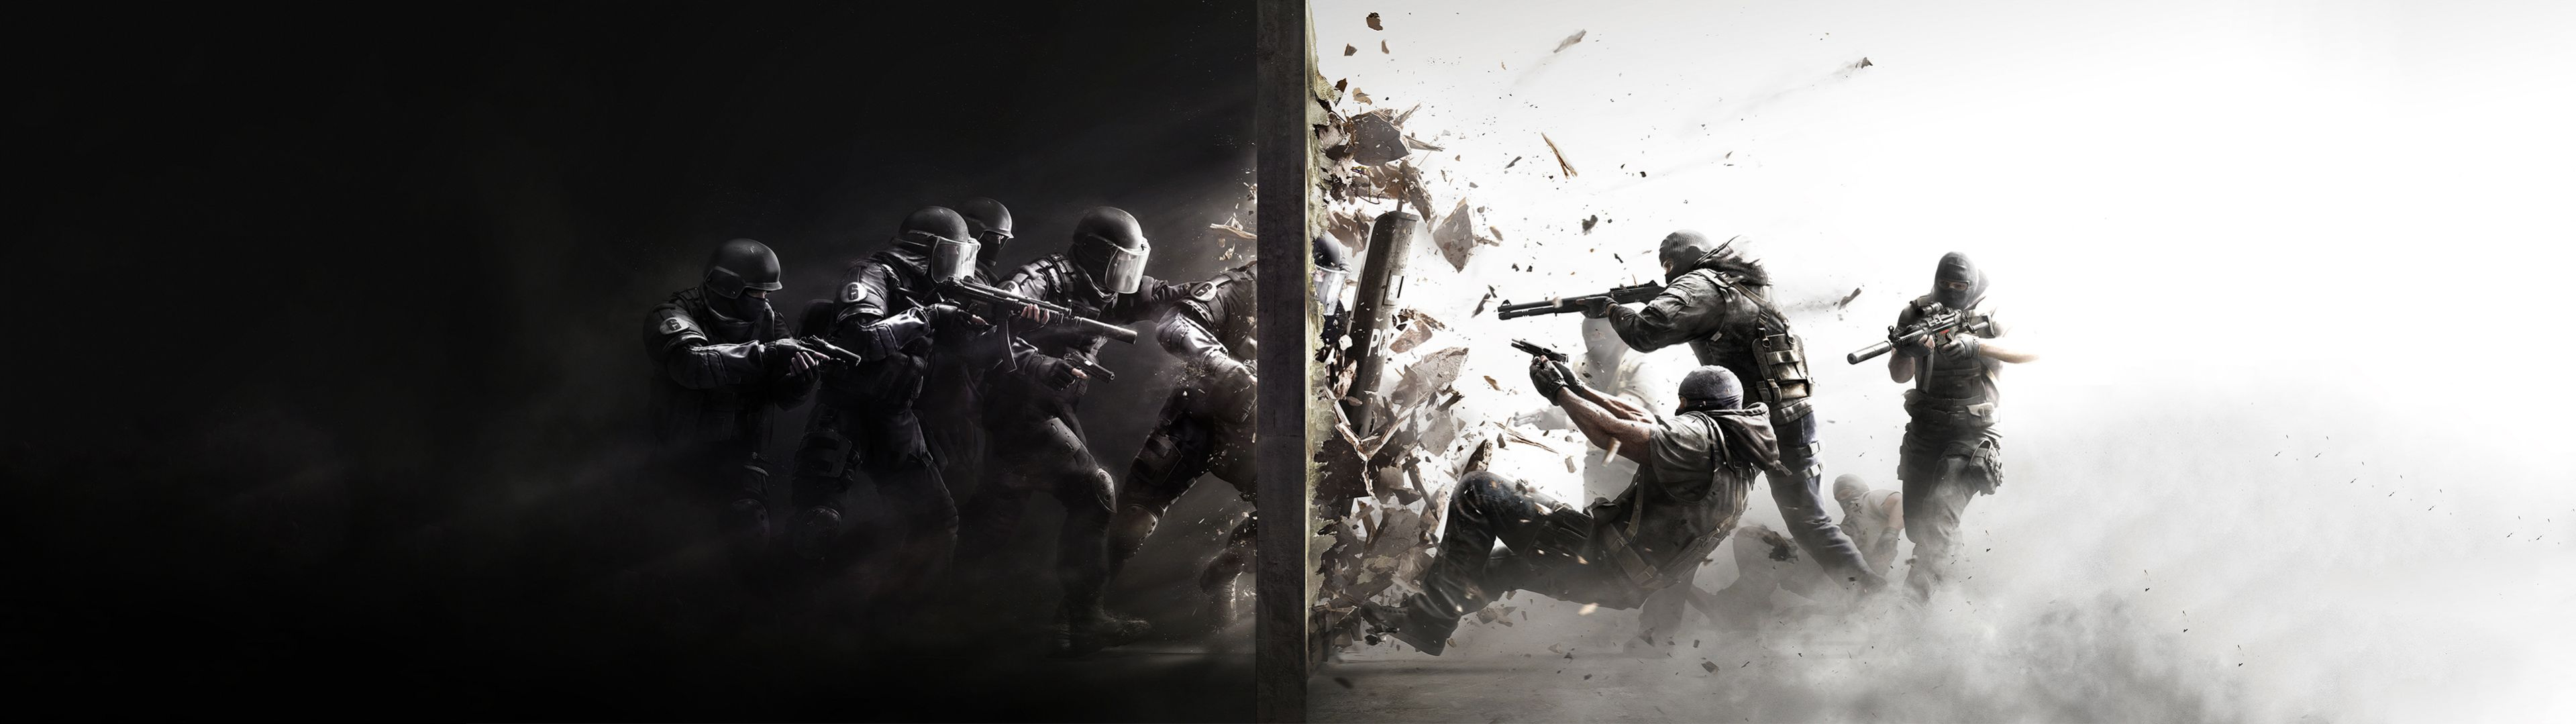 Counter Strike Dual Screen Wallpaper | 3839x1079 | ID:43751